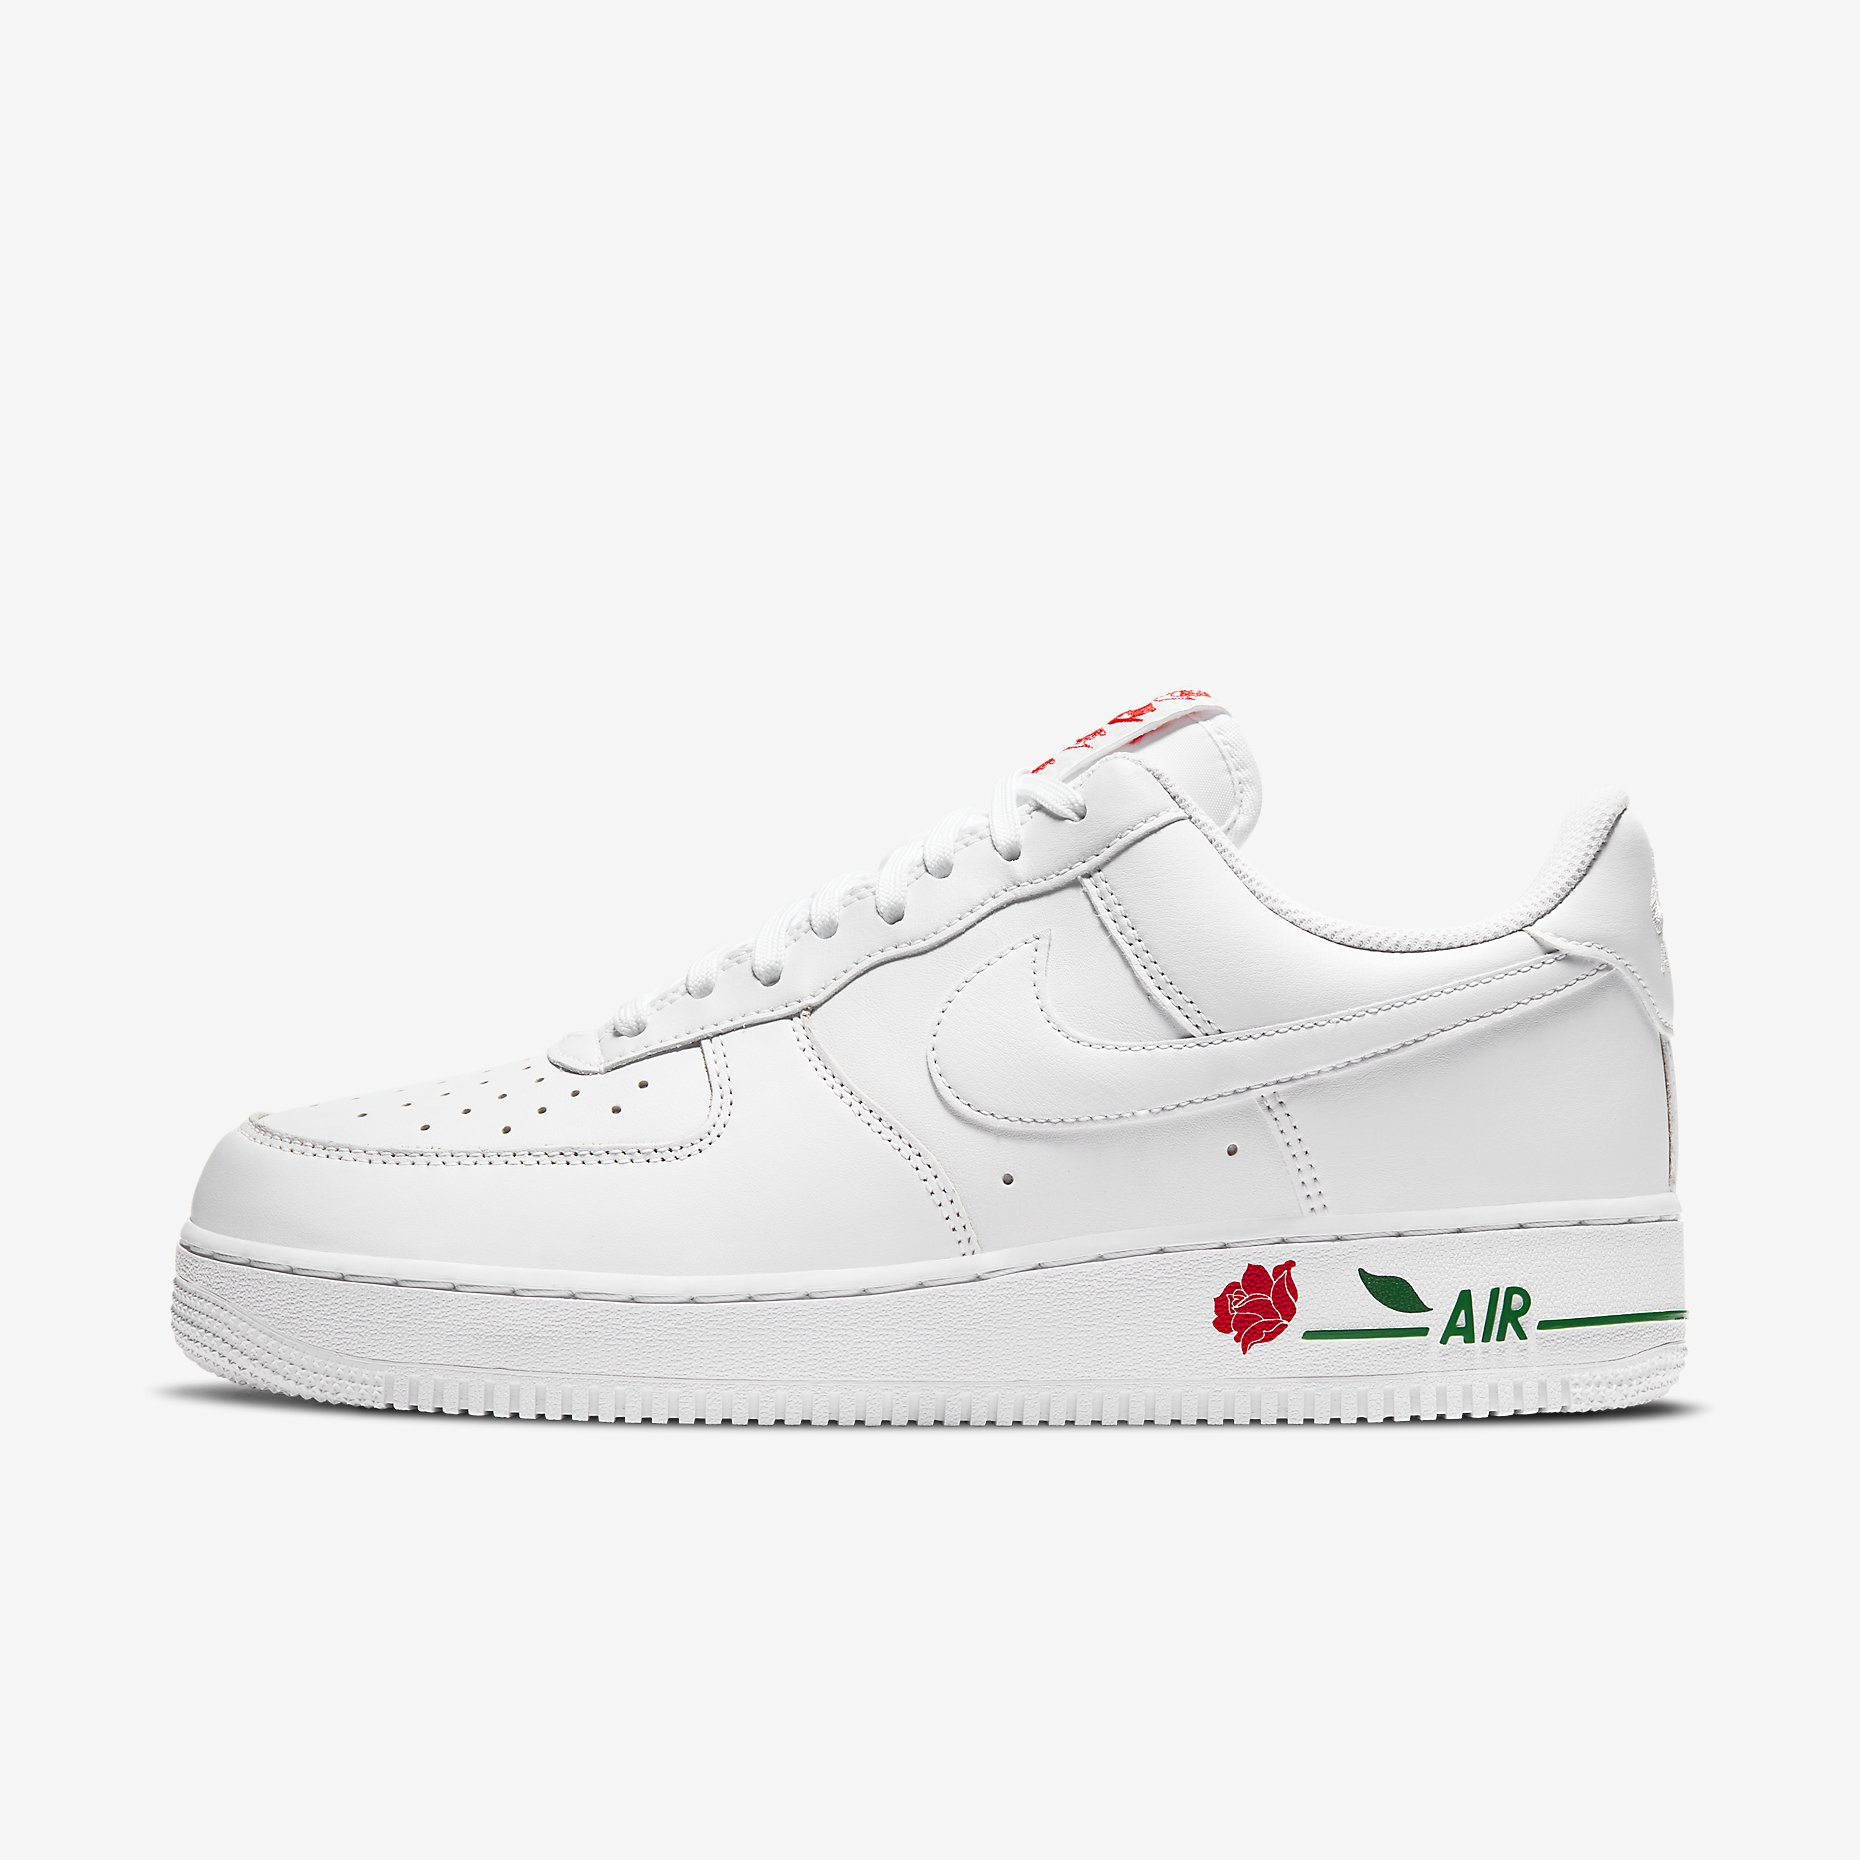 Nike Air Force 1 '07 LX 'White Bag'}